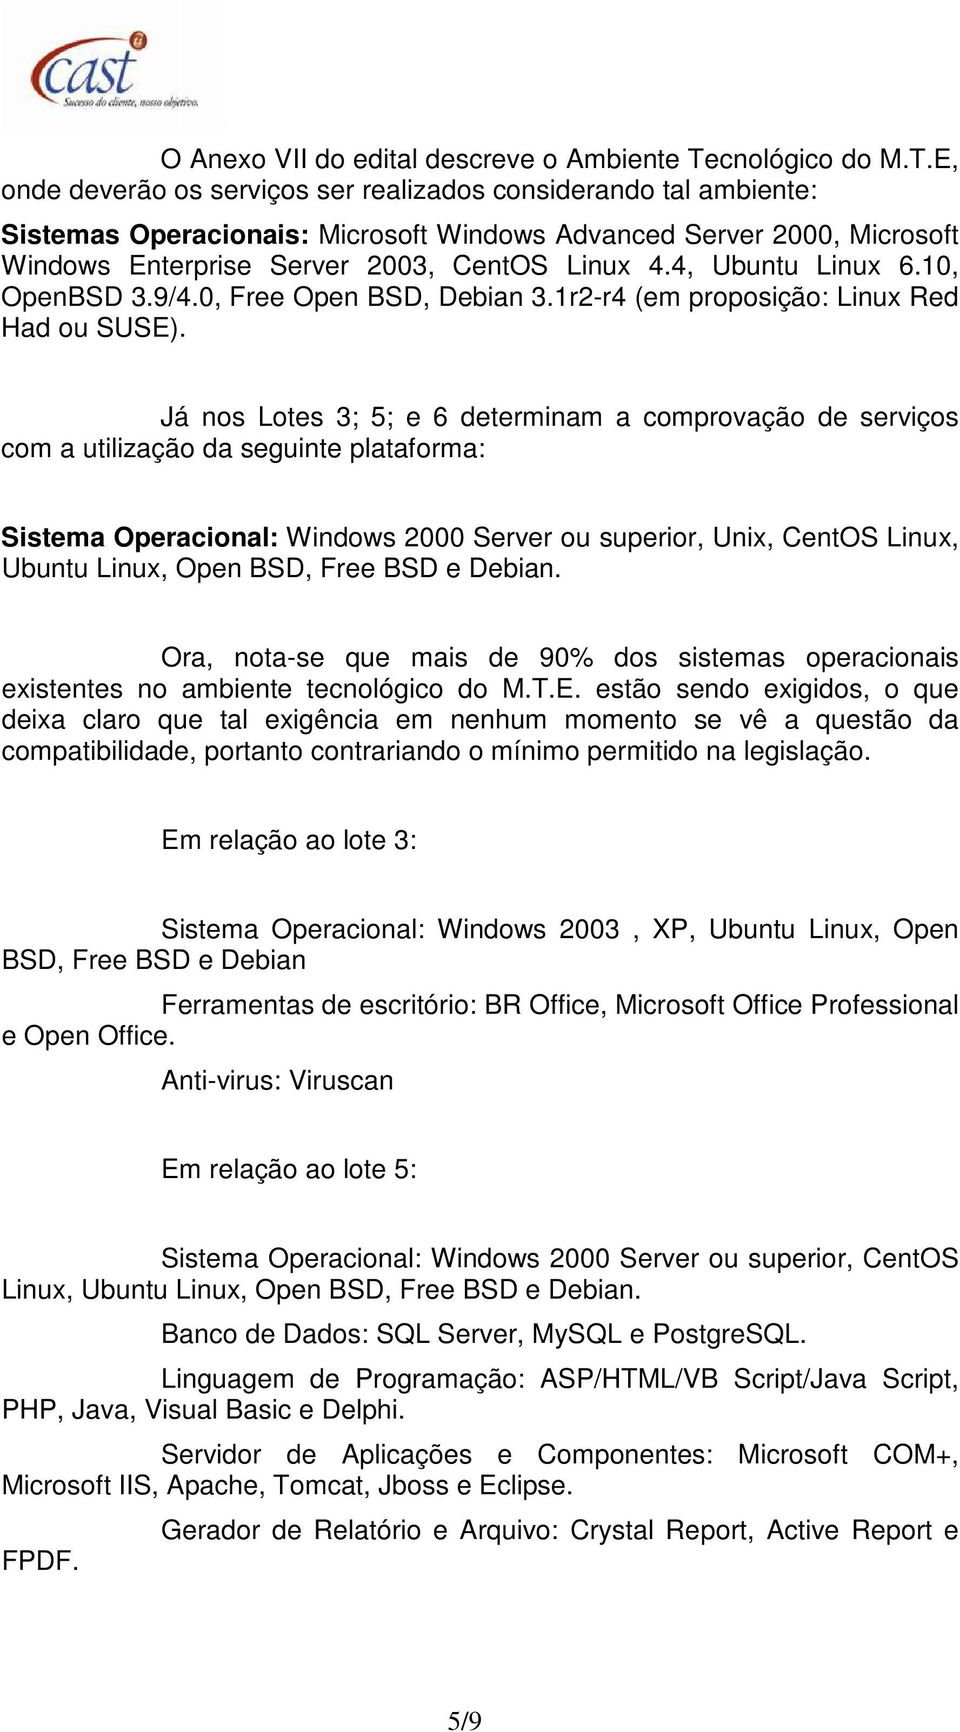 E, onde deverão os serviços ser realizados considerando tal ambiente: Sistemas Operacionais: Microsoft Windows Advanced Server 2000, Microsoft Windows Enterprise Server 2003, CentOS Linux 4.